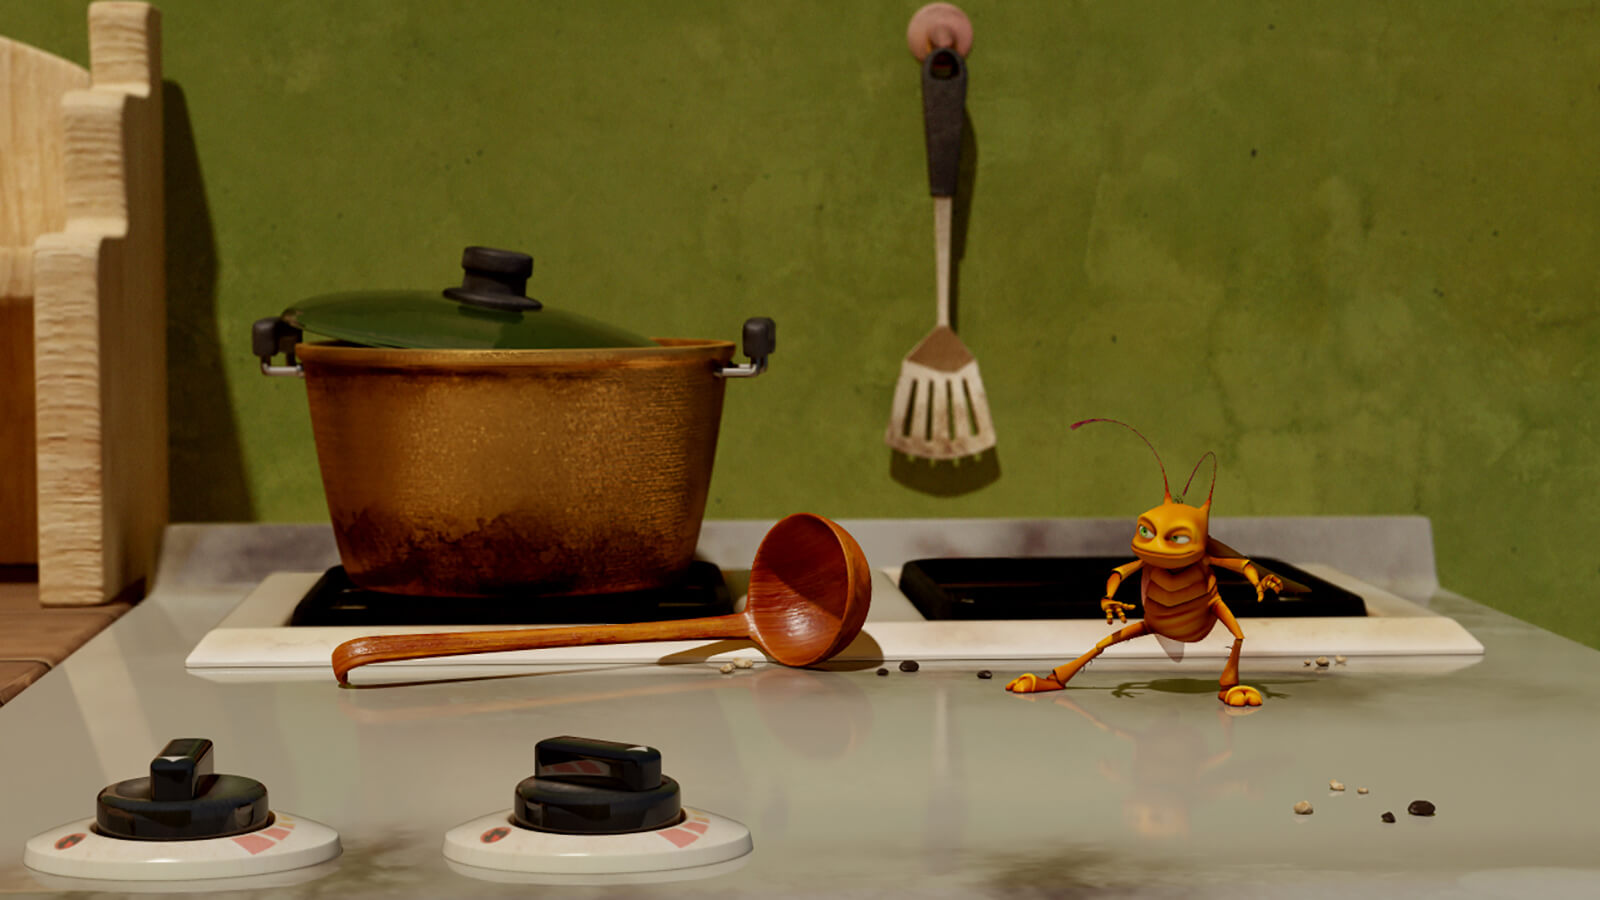 A CG-animated roach crouches adroitly on a stovetop in front of a pot and wooden ladle.